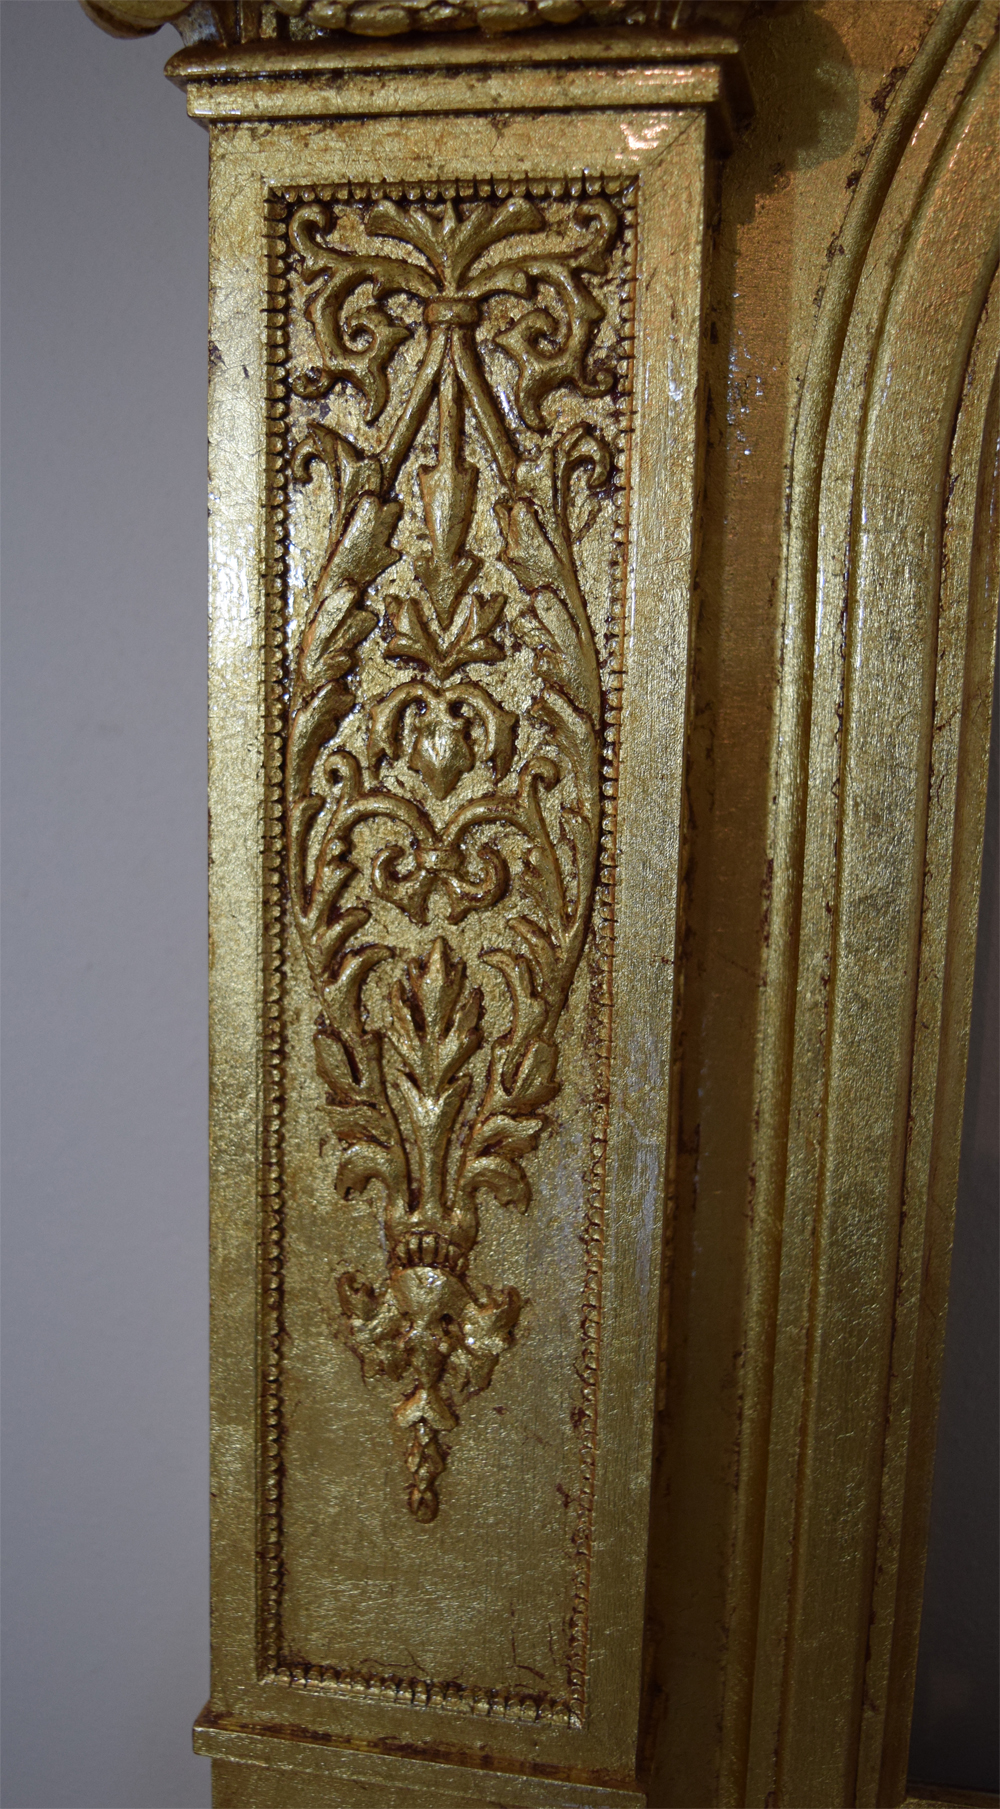 Detail of the front panel ornament.